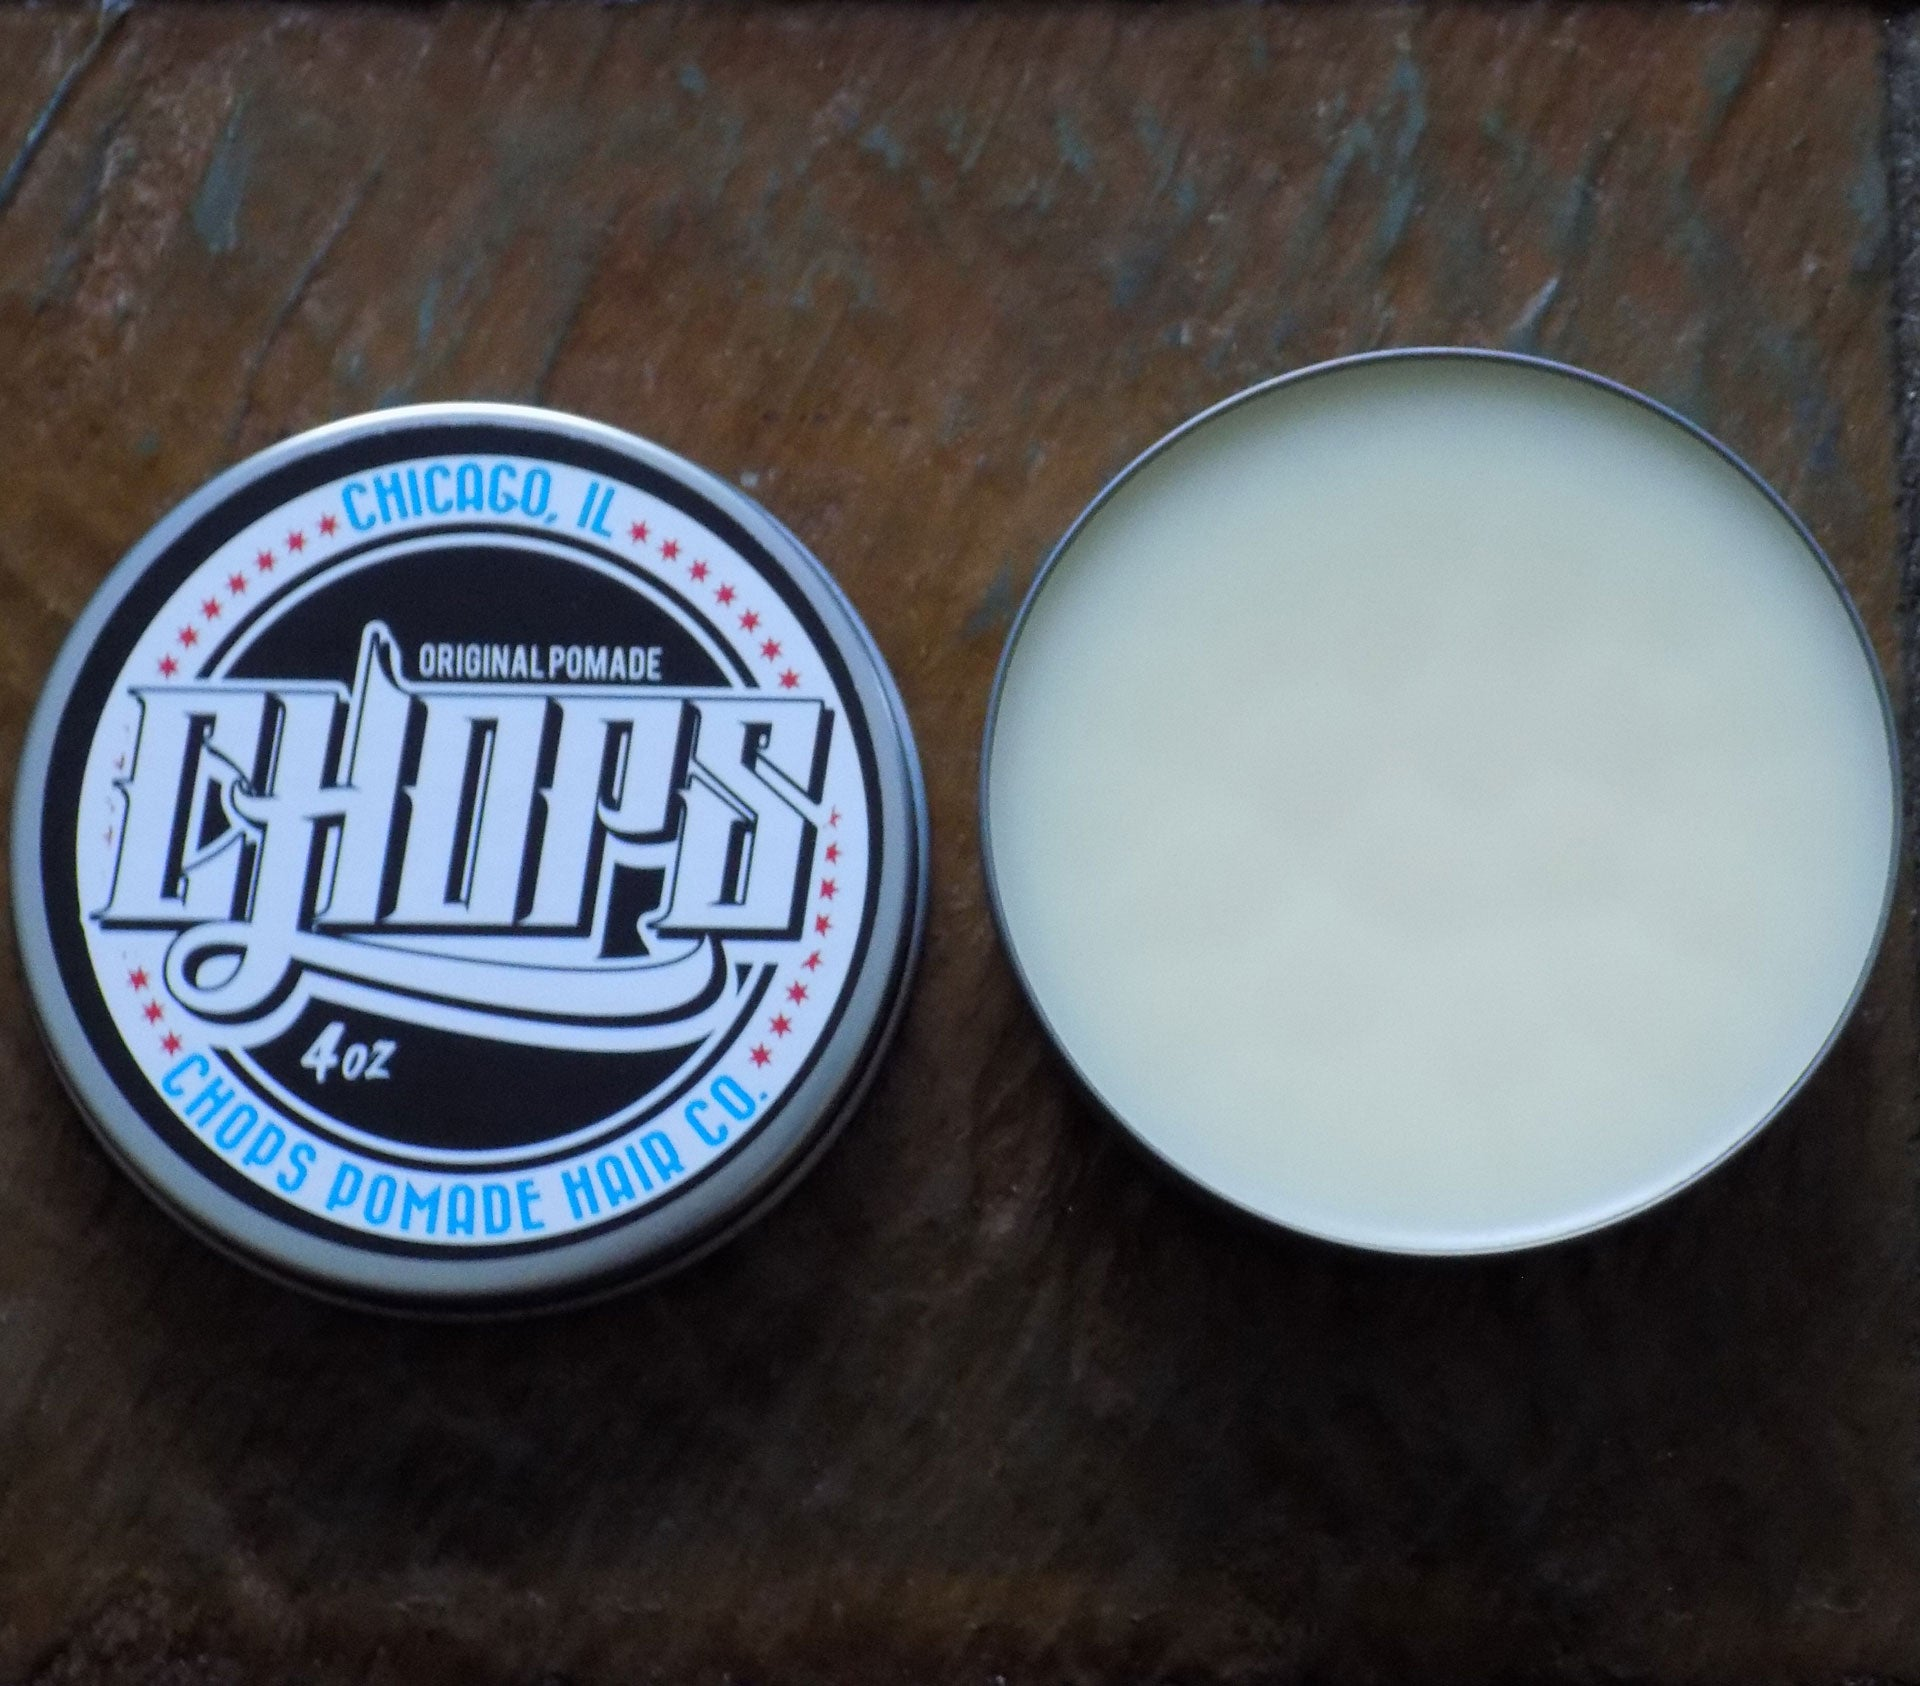 The chops pomade shown without the lid to show the smooth texture of the oil